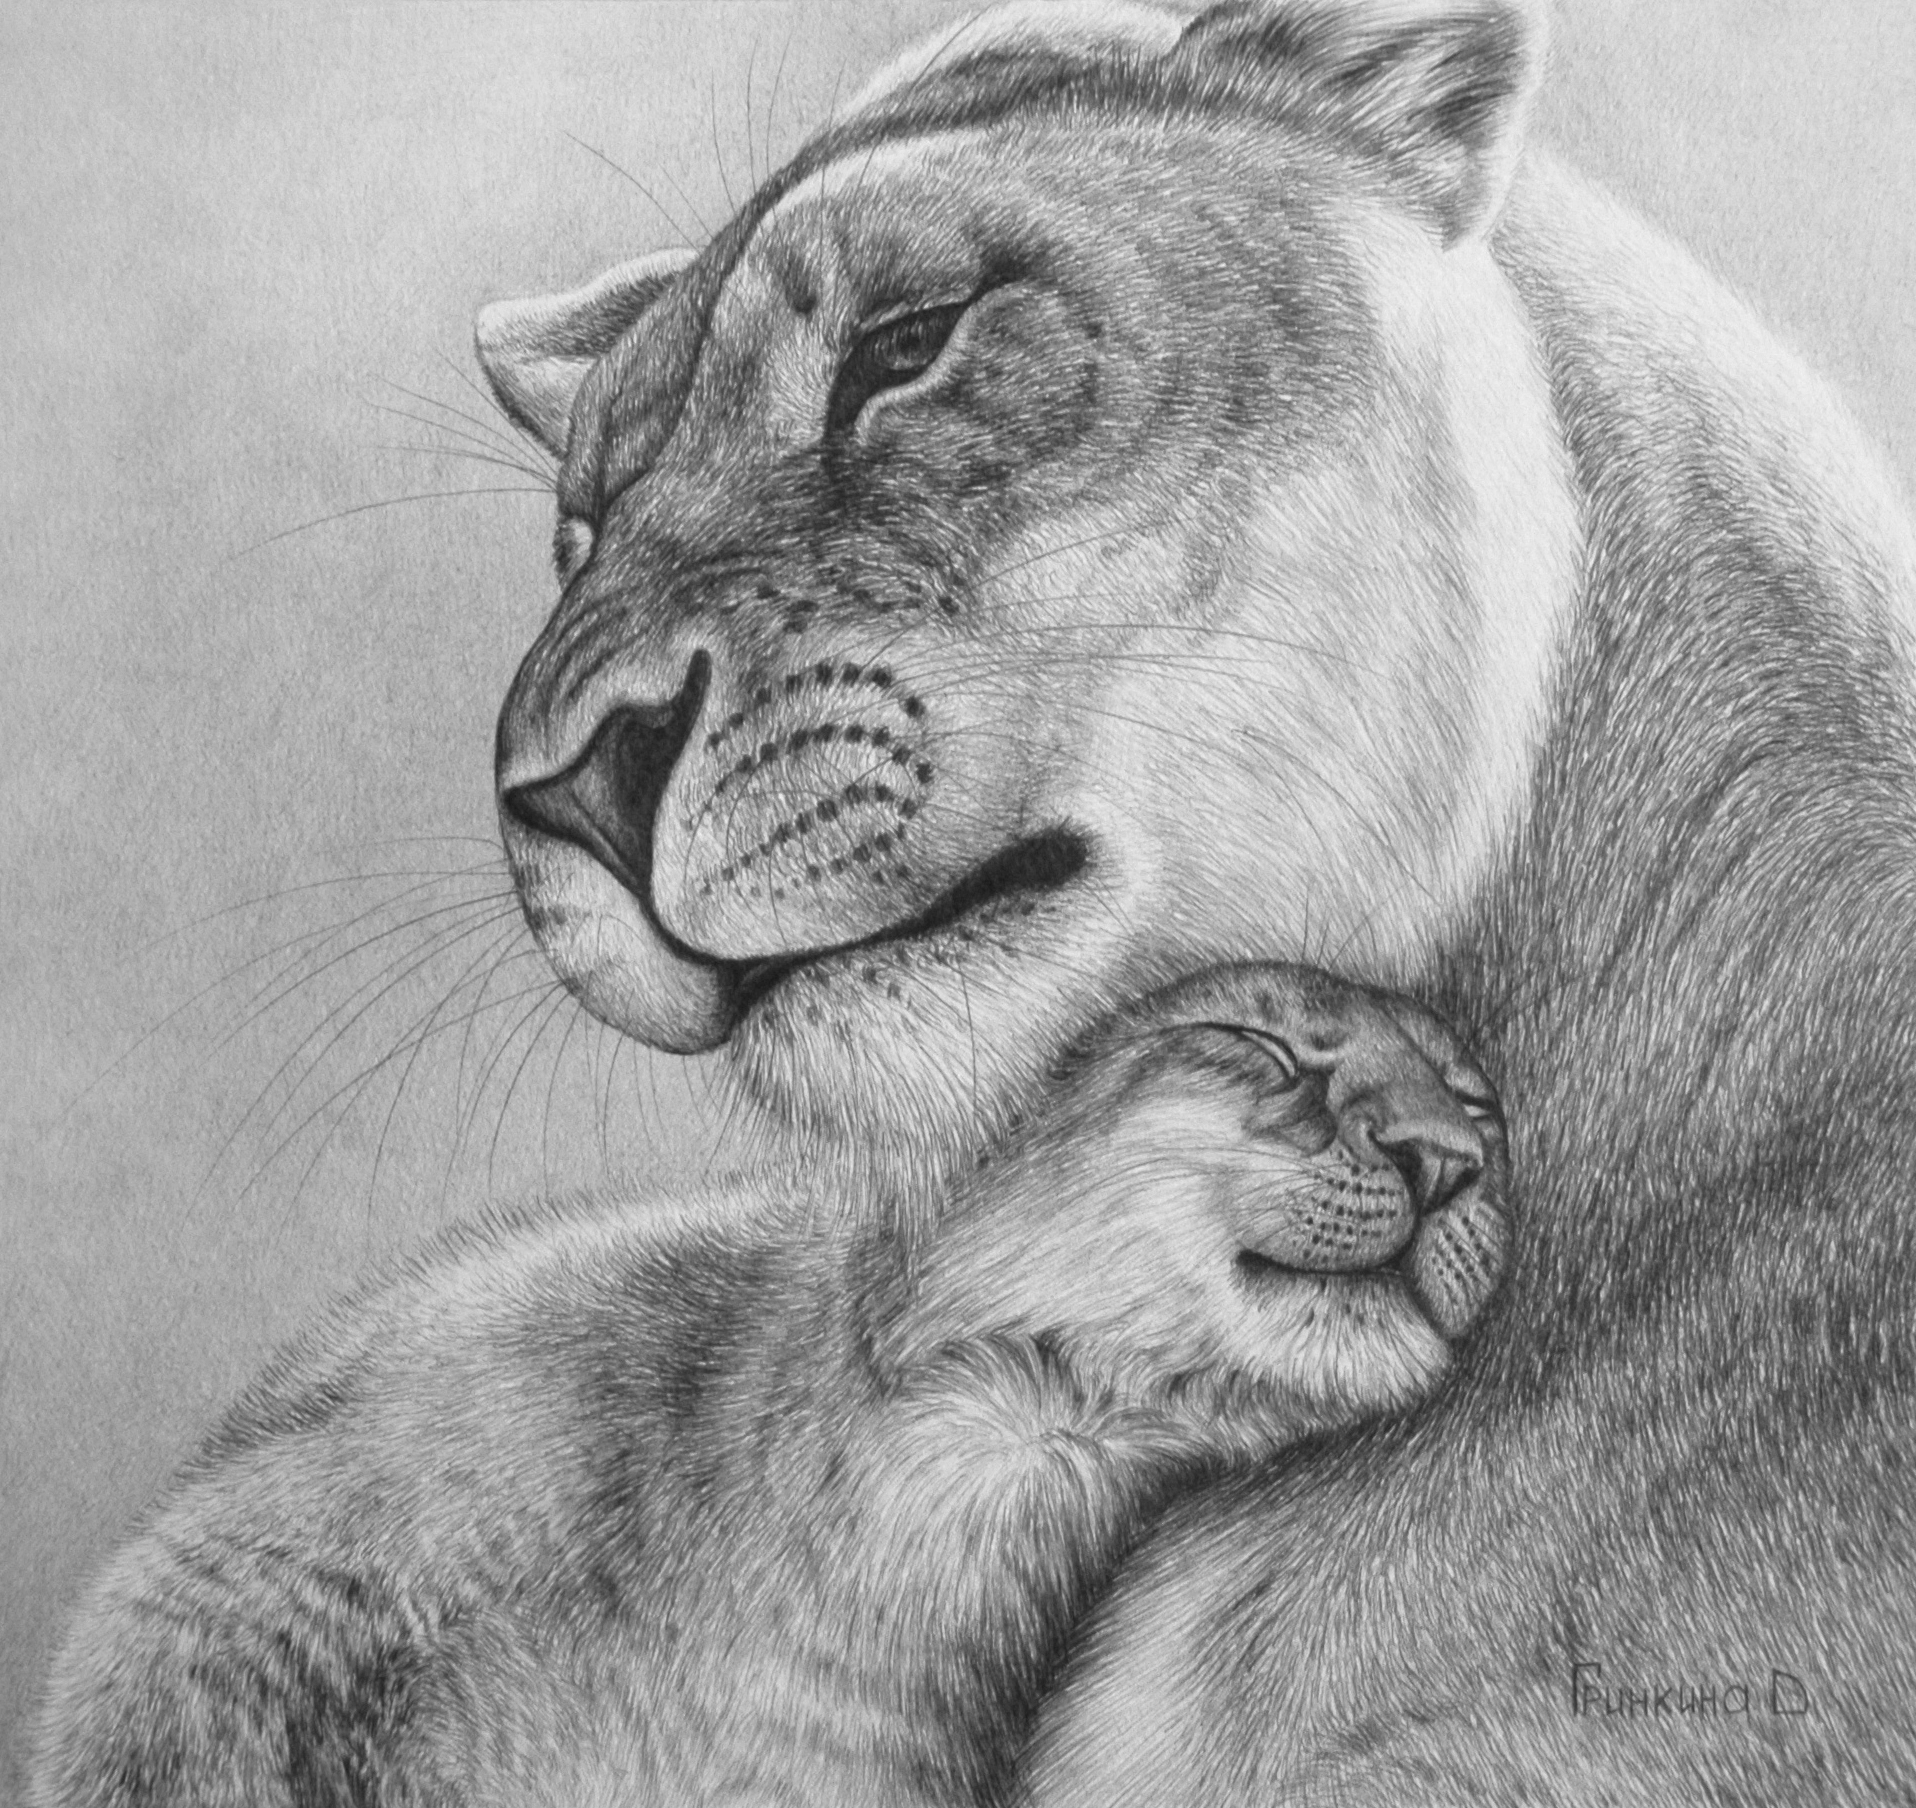 Lioness with lioness